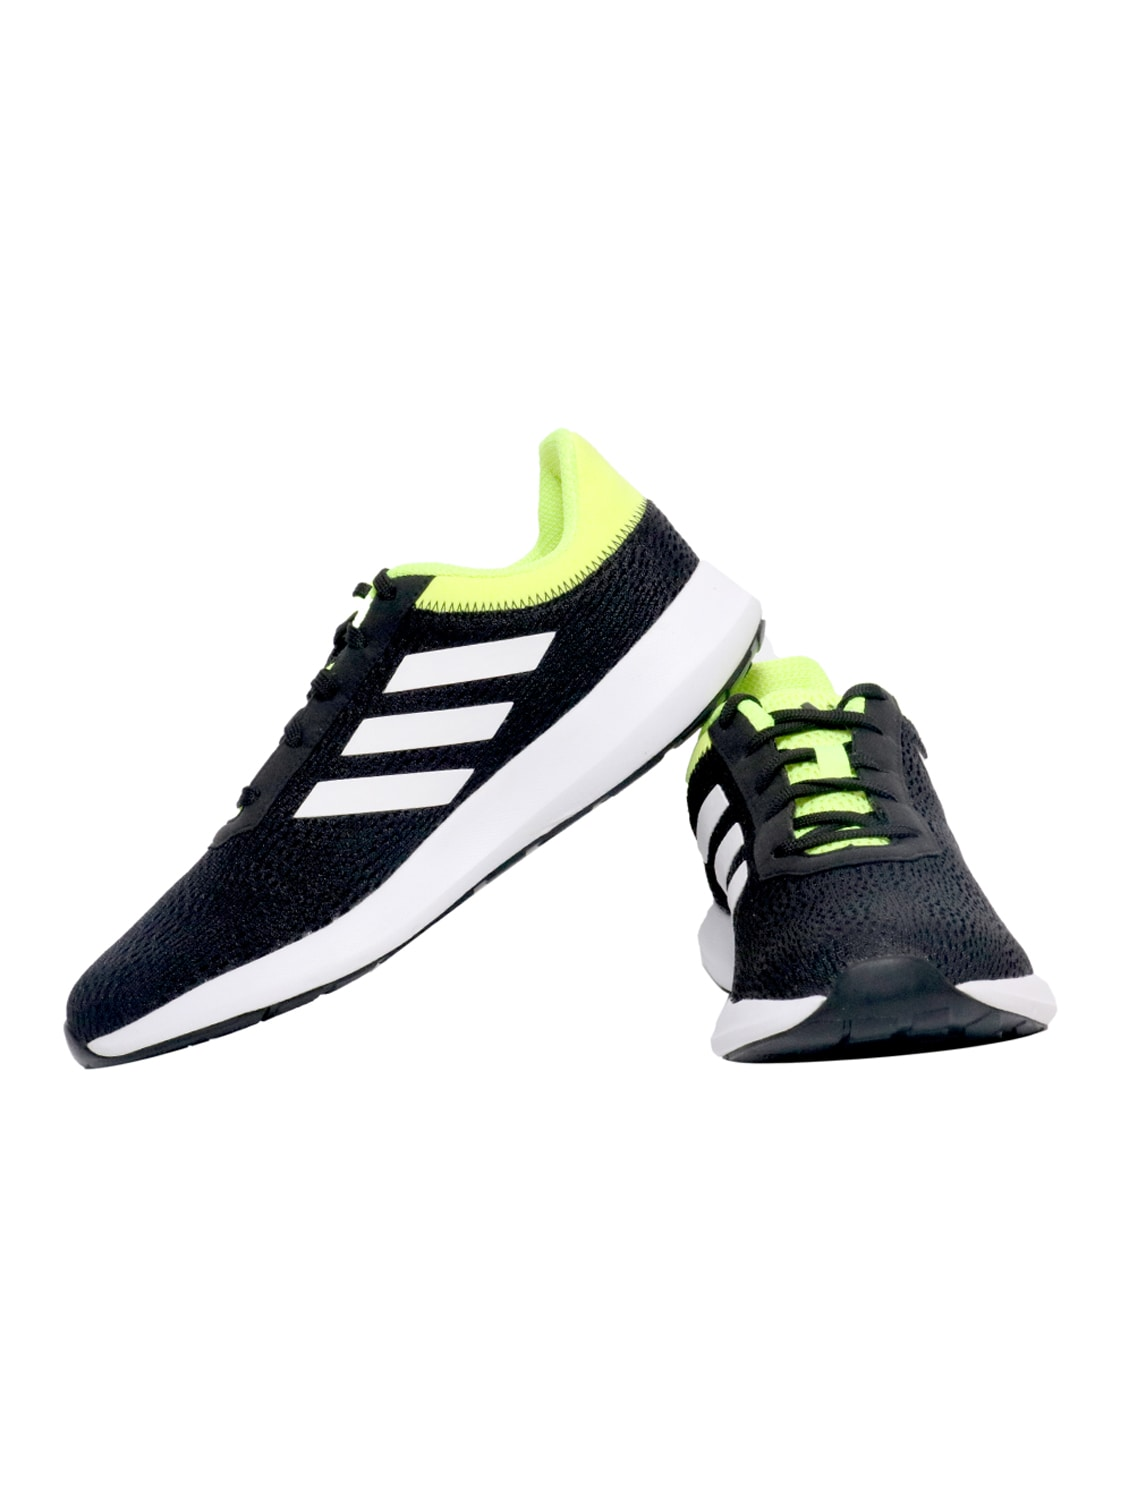 39ec96a1ae01 Buy Black Mesh Sport Shoe for Men from Adidas for ₹3179 at 26% off ...